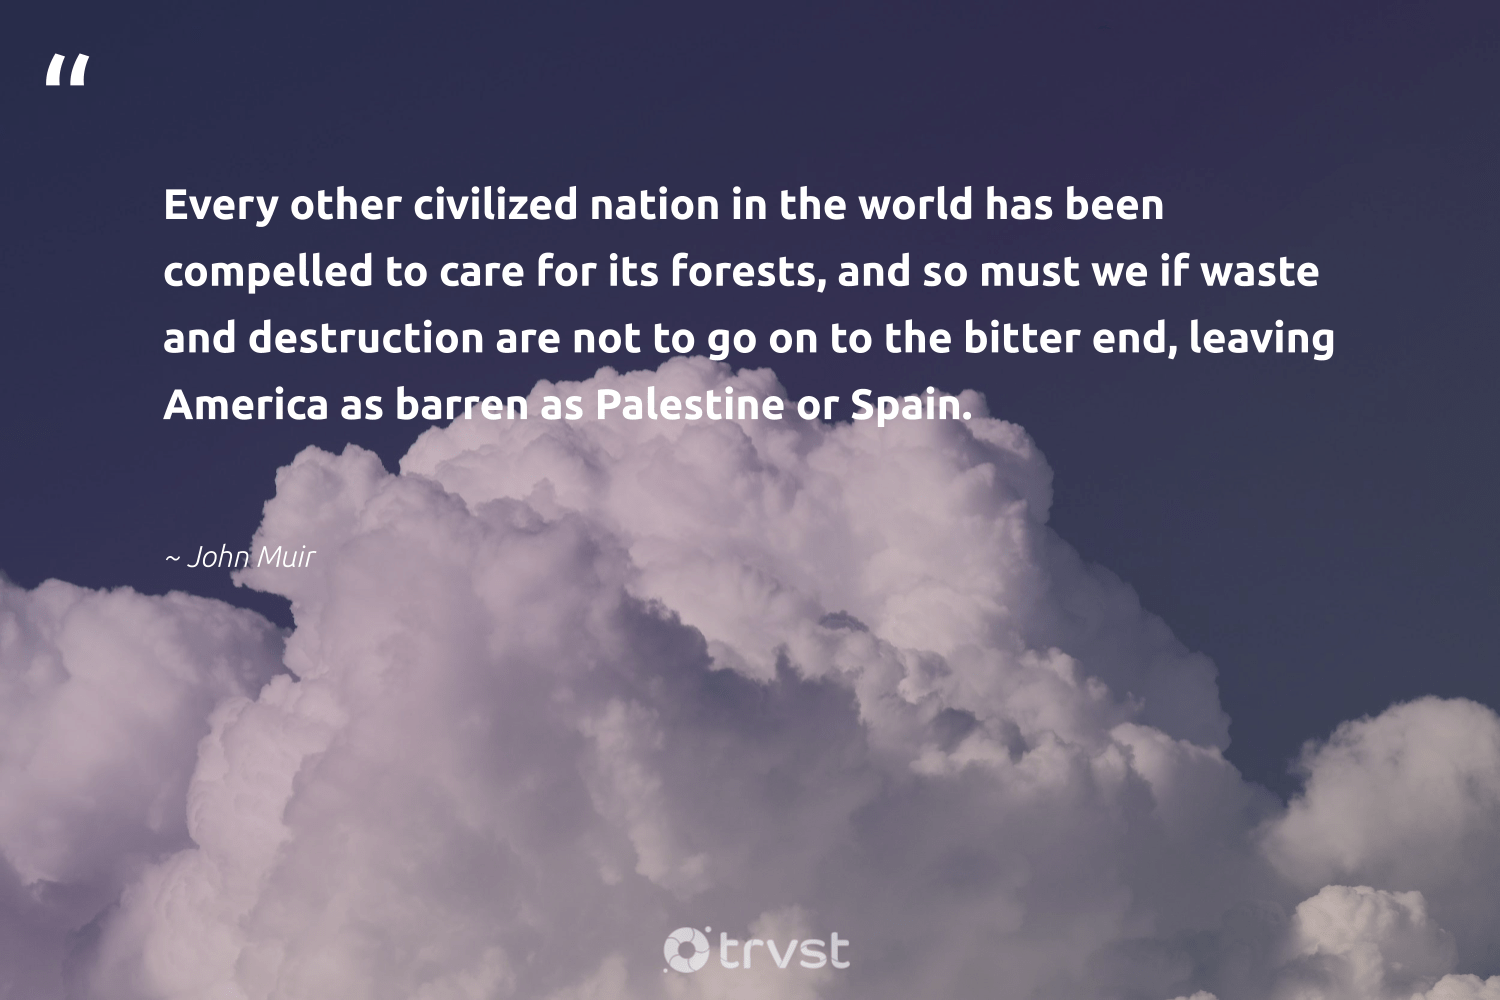 """Every other civilized nation in the world has been compelled to care for its forests, and so must we if waste and destruction are not to go on to the bitter end, leaving America as barren as Palestine or Spain.""  - John Muir #trvst #quotes #waste #natureseekers #collectiveaction #naturelovers #dogood #sustainable #planetearthfirst #ecofriendly #ecoconscious #sustainability"